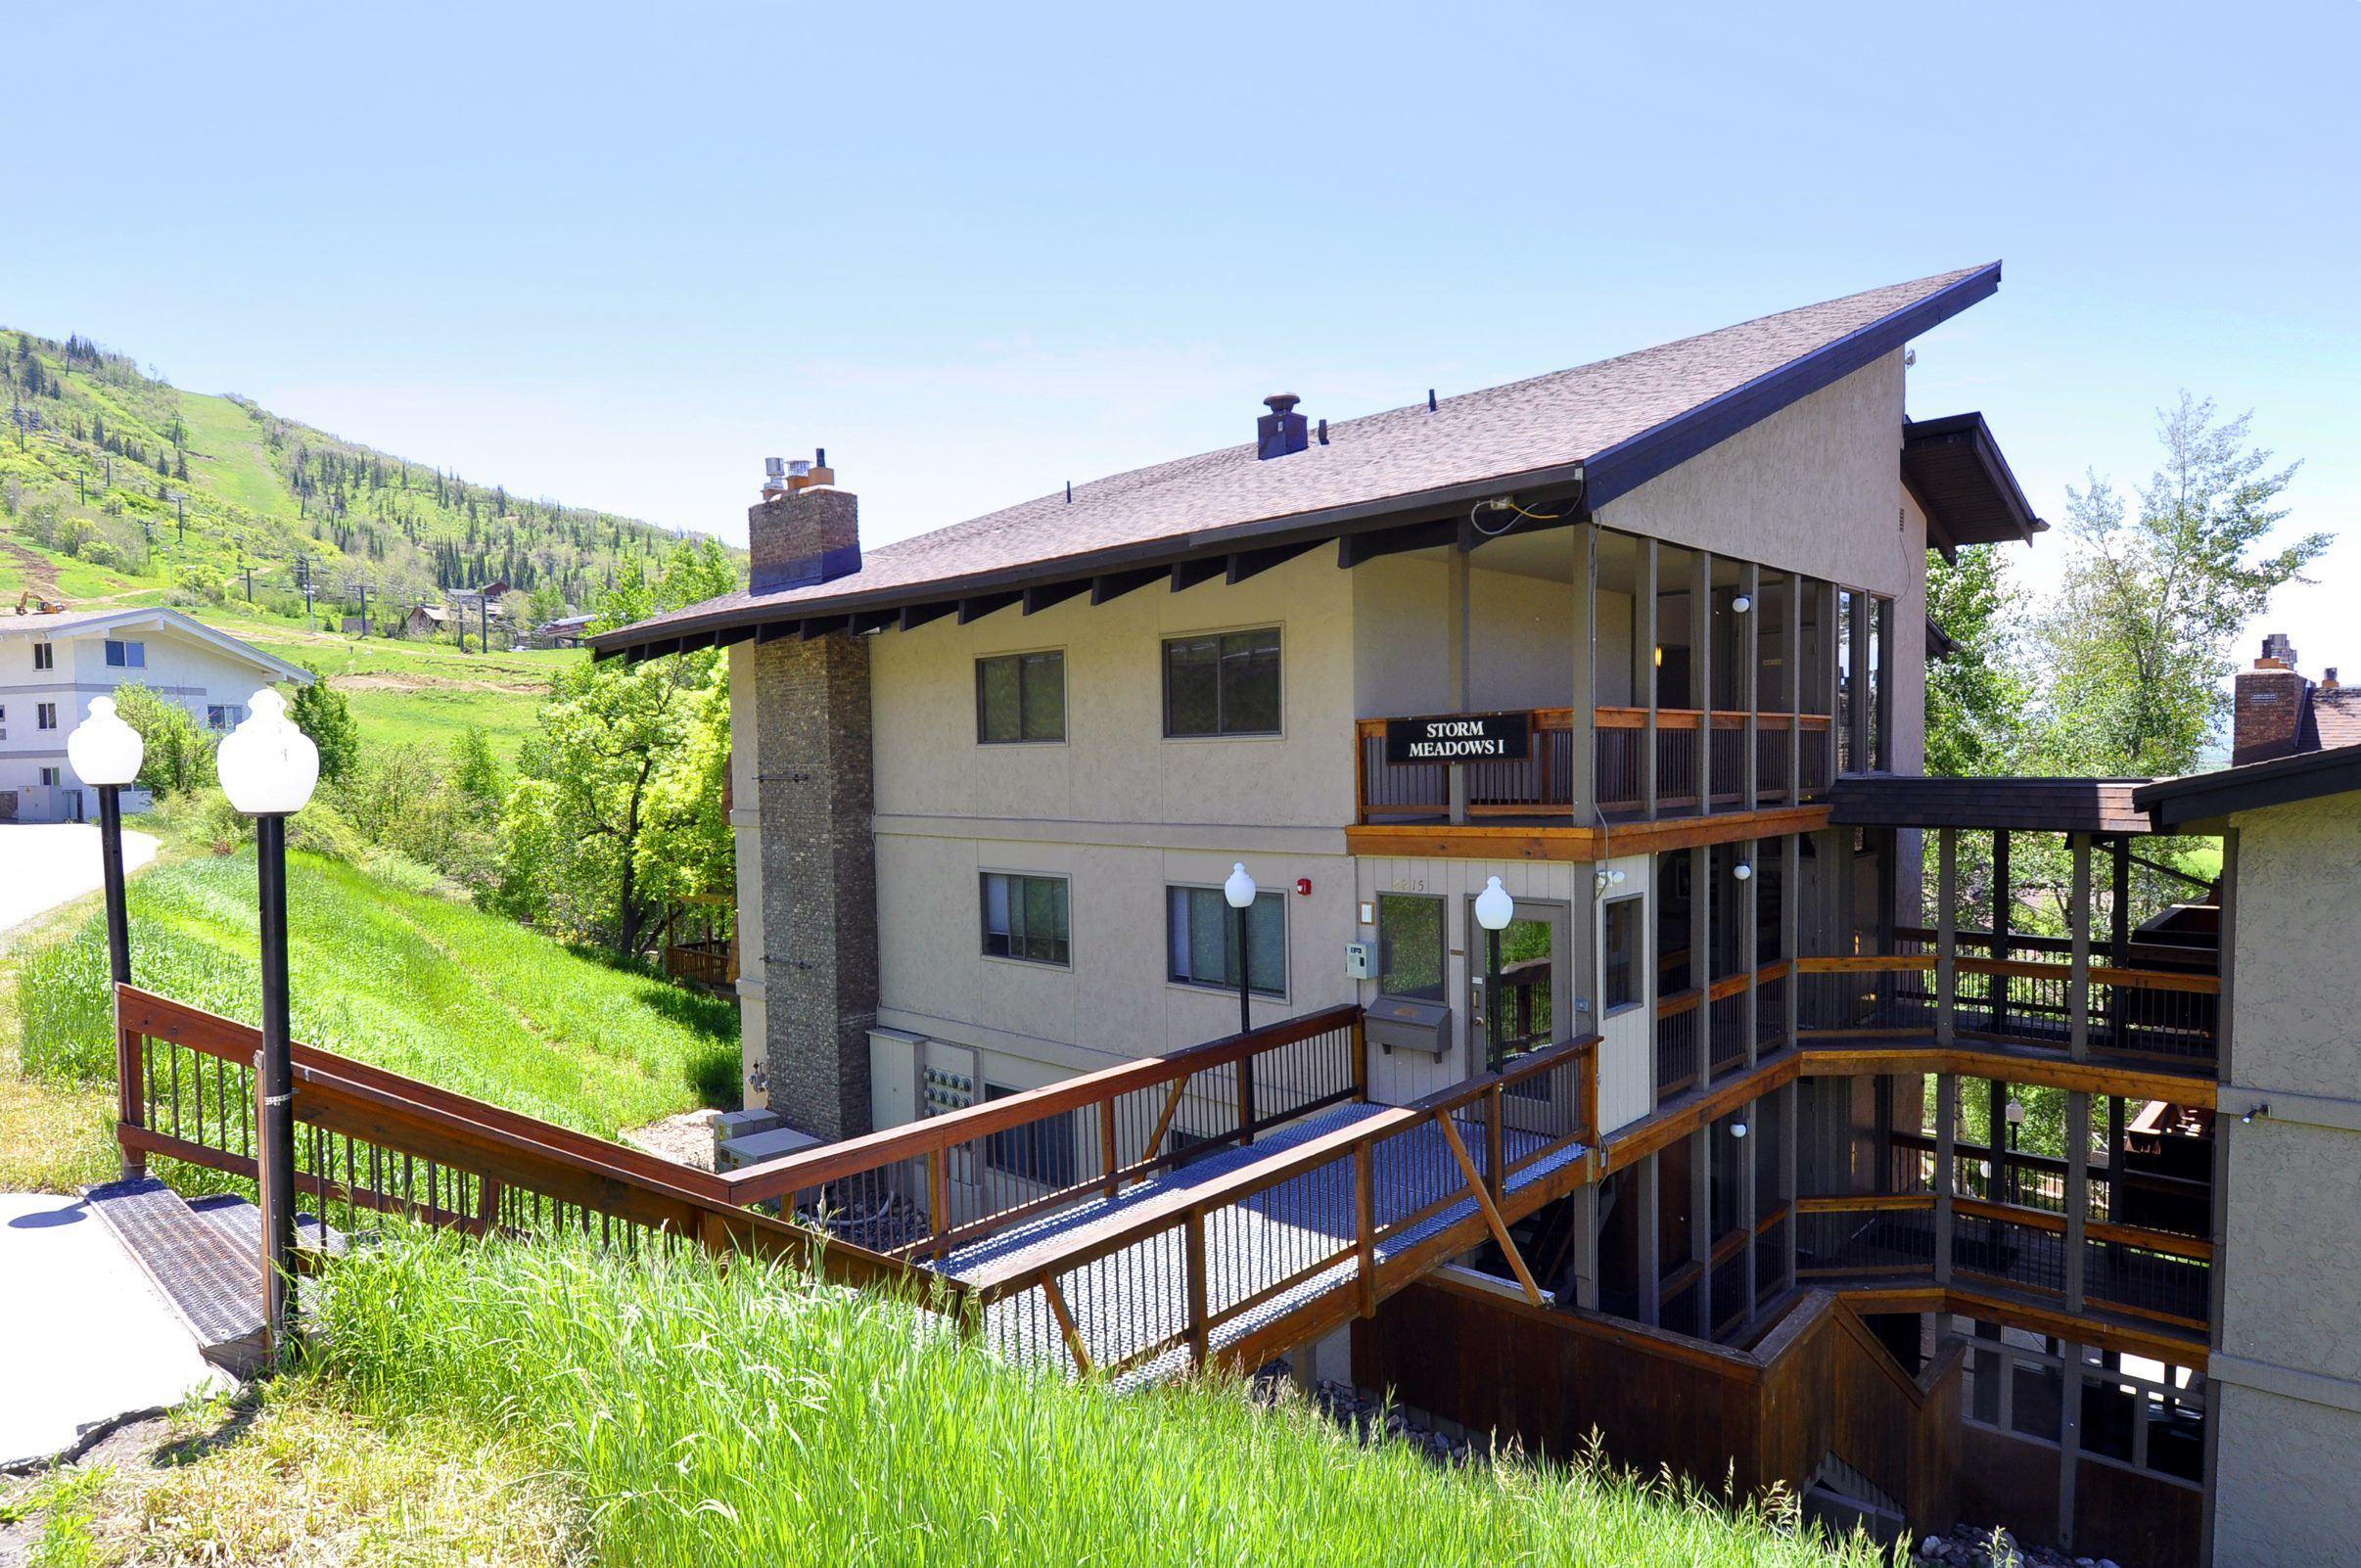 storm meadows at christie base steamboat springs lodging. Black Bedroom Furniture Sets. Home Design Ideas